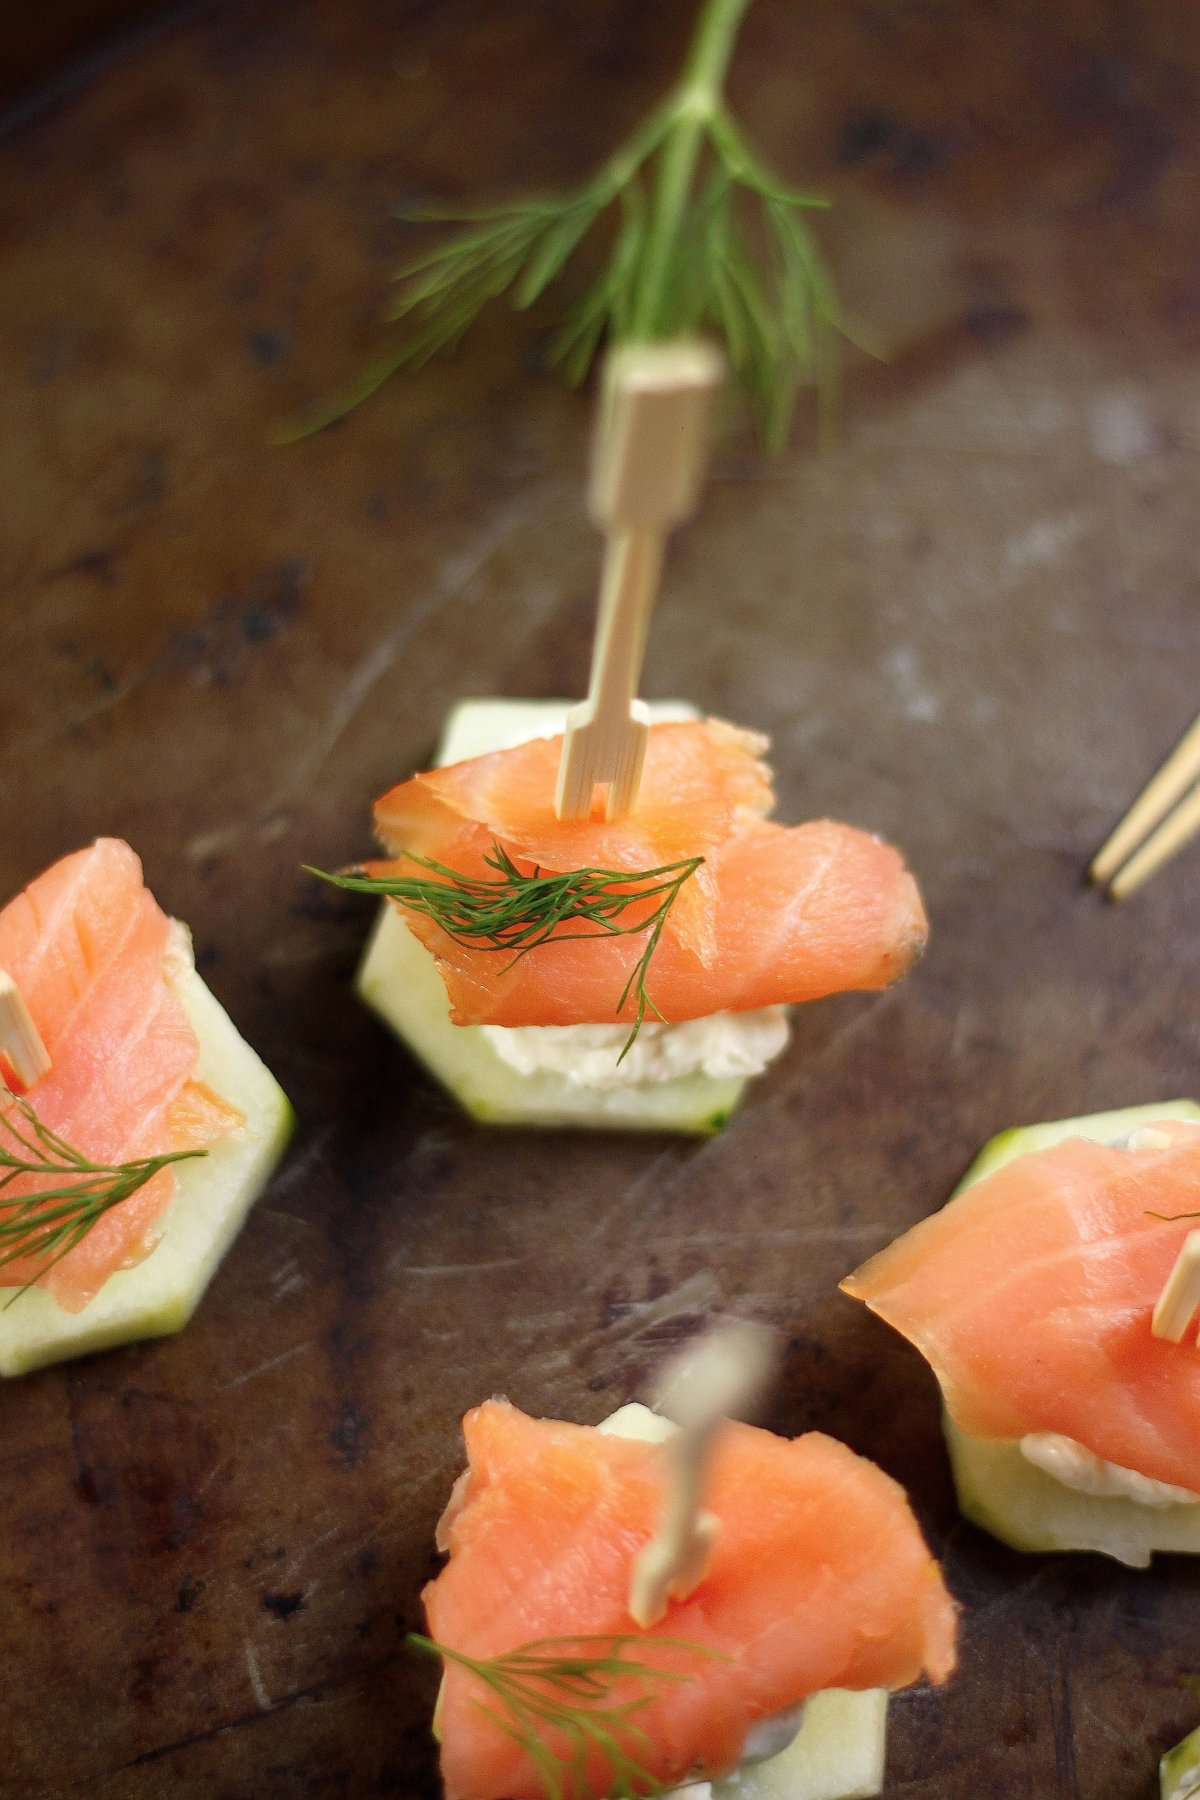 Smoked Salmon and Cream Cheese Cucumber Bites | Baker by Nature